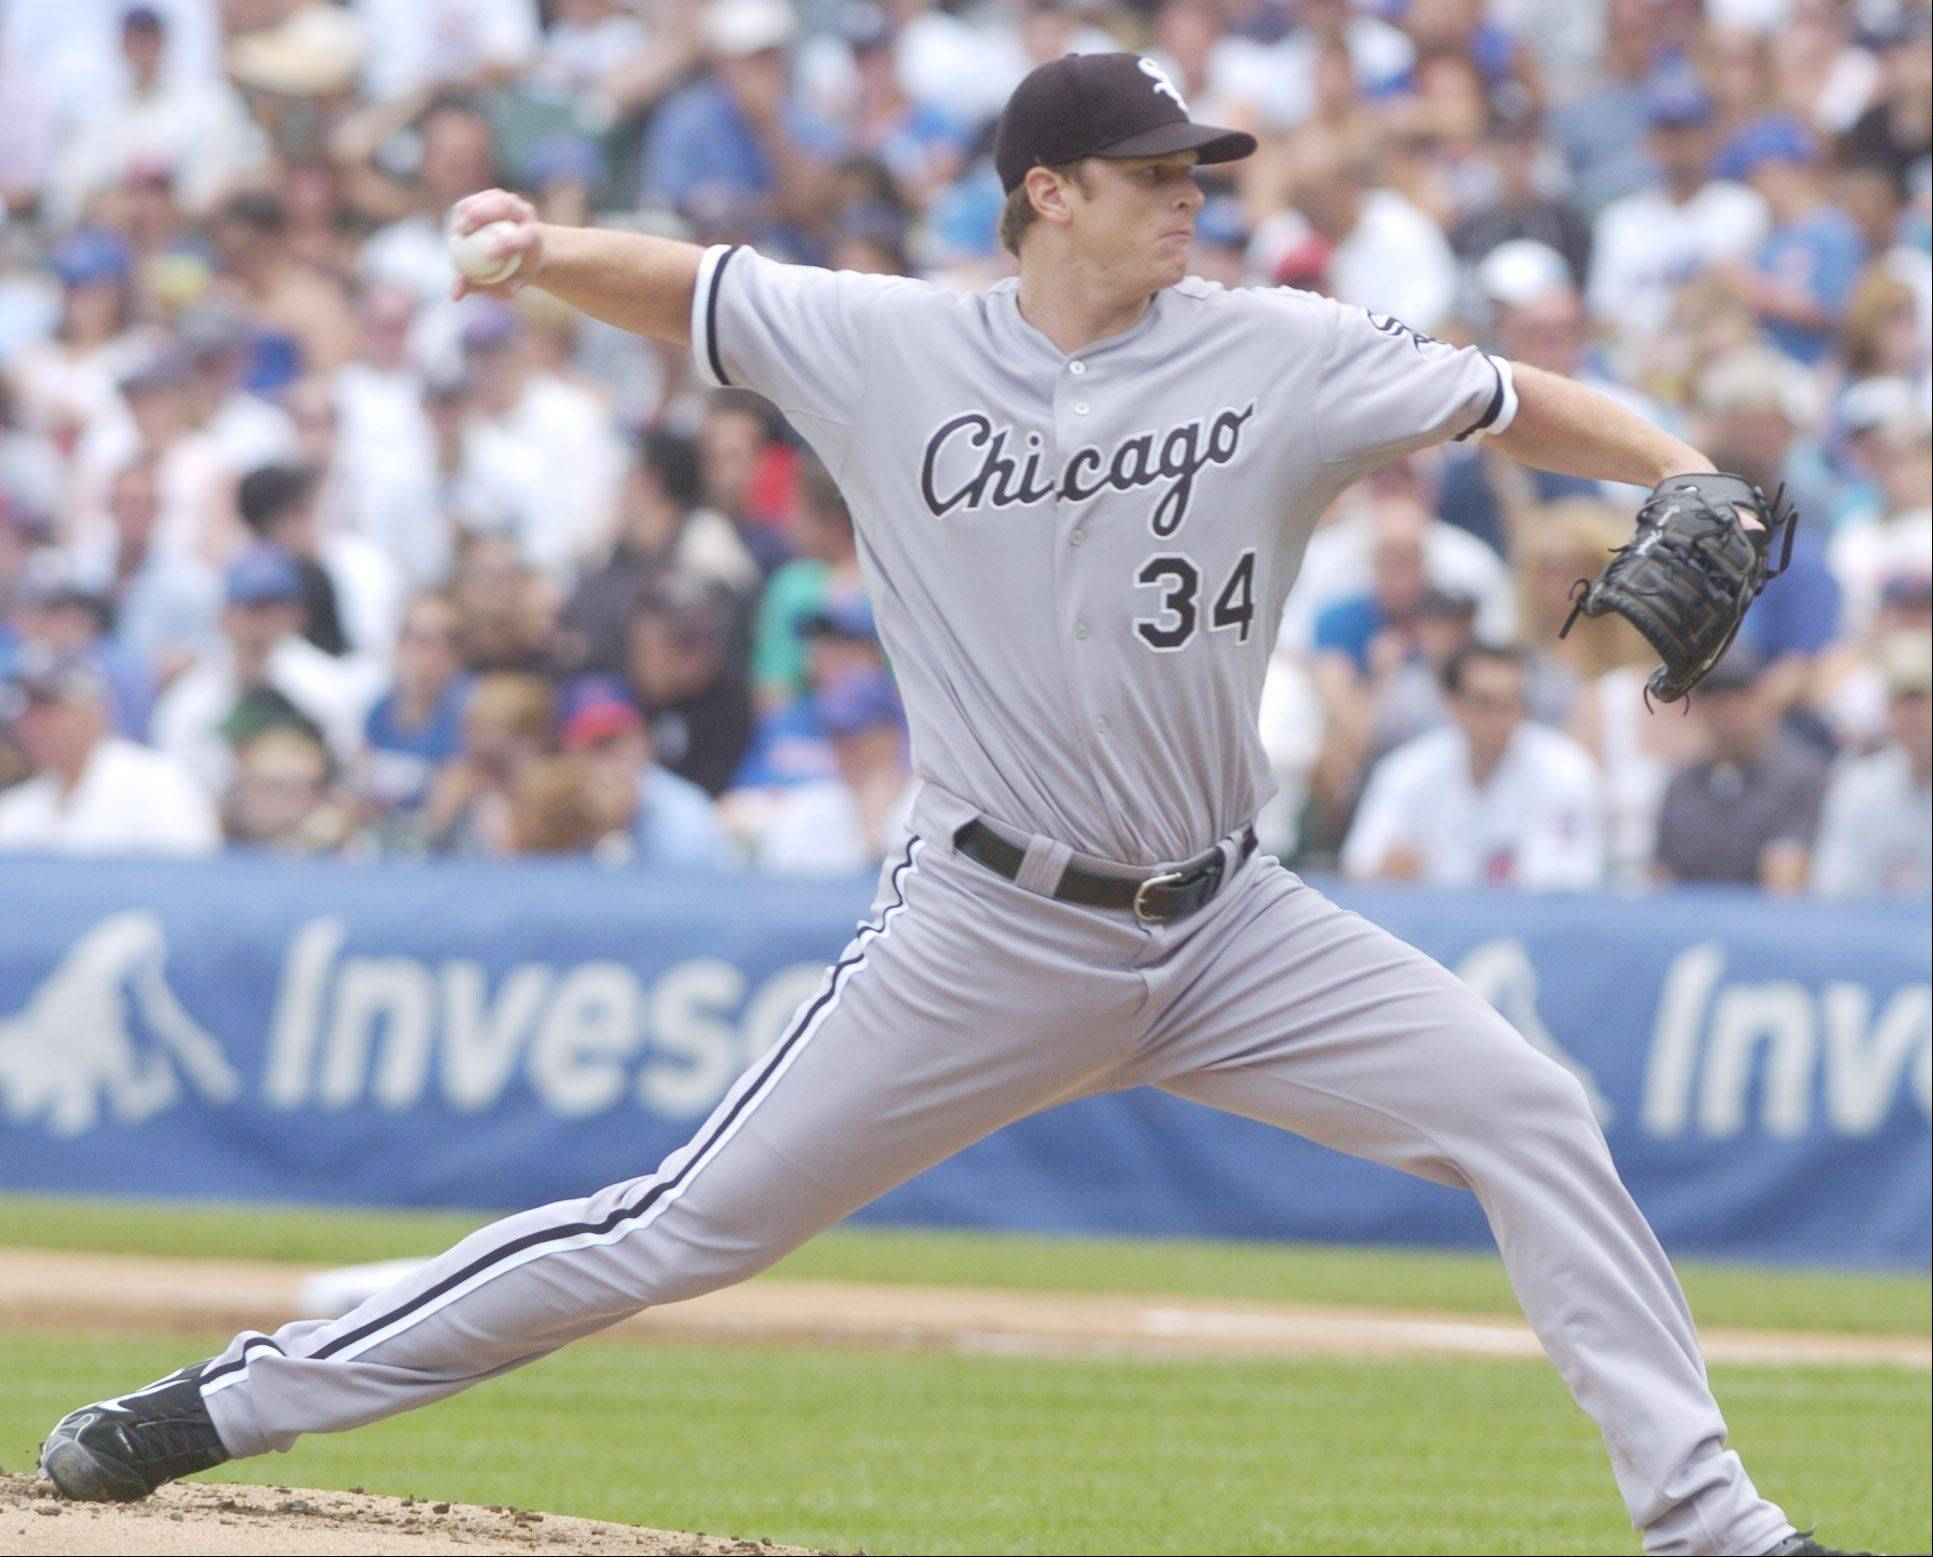 White Sox starter Gavin Floyd delives against the Cubs during Sunday�s game at Wrigley Field.